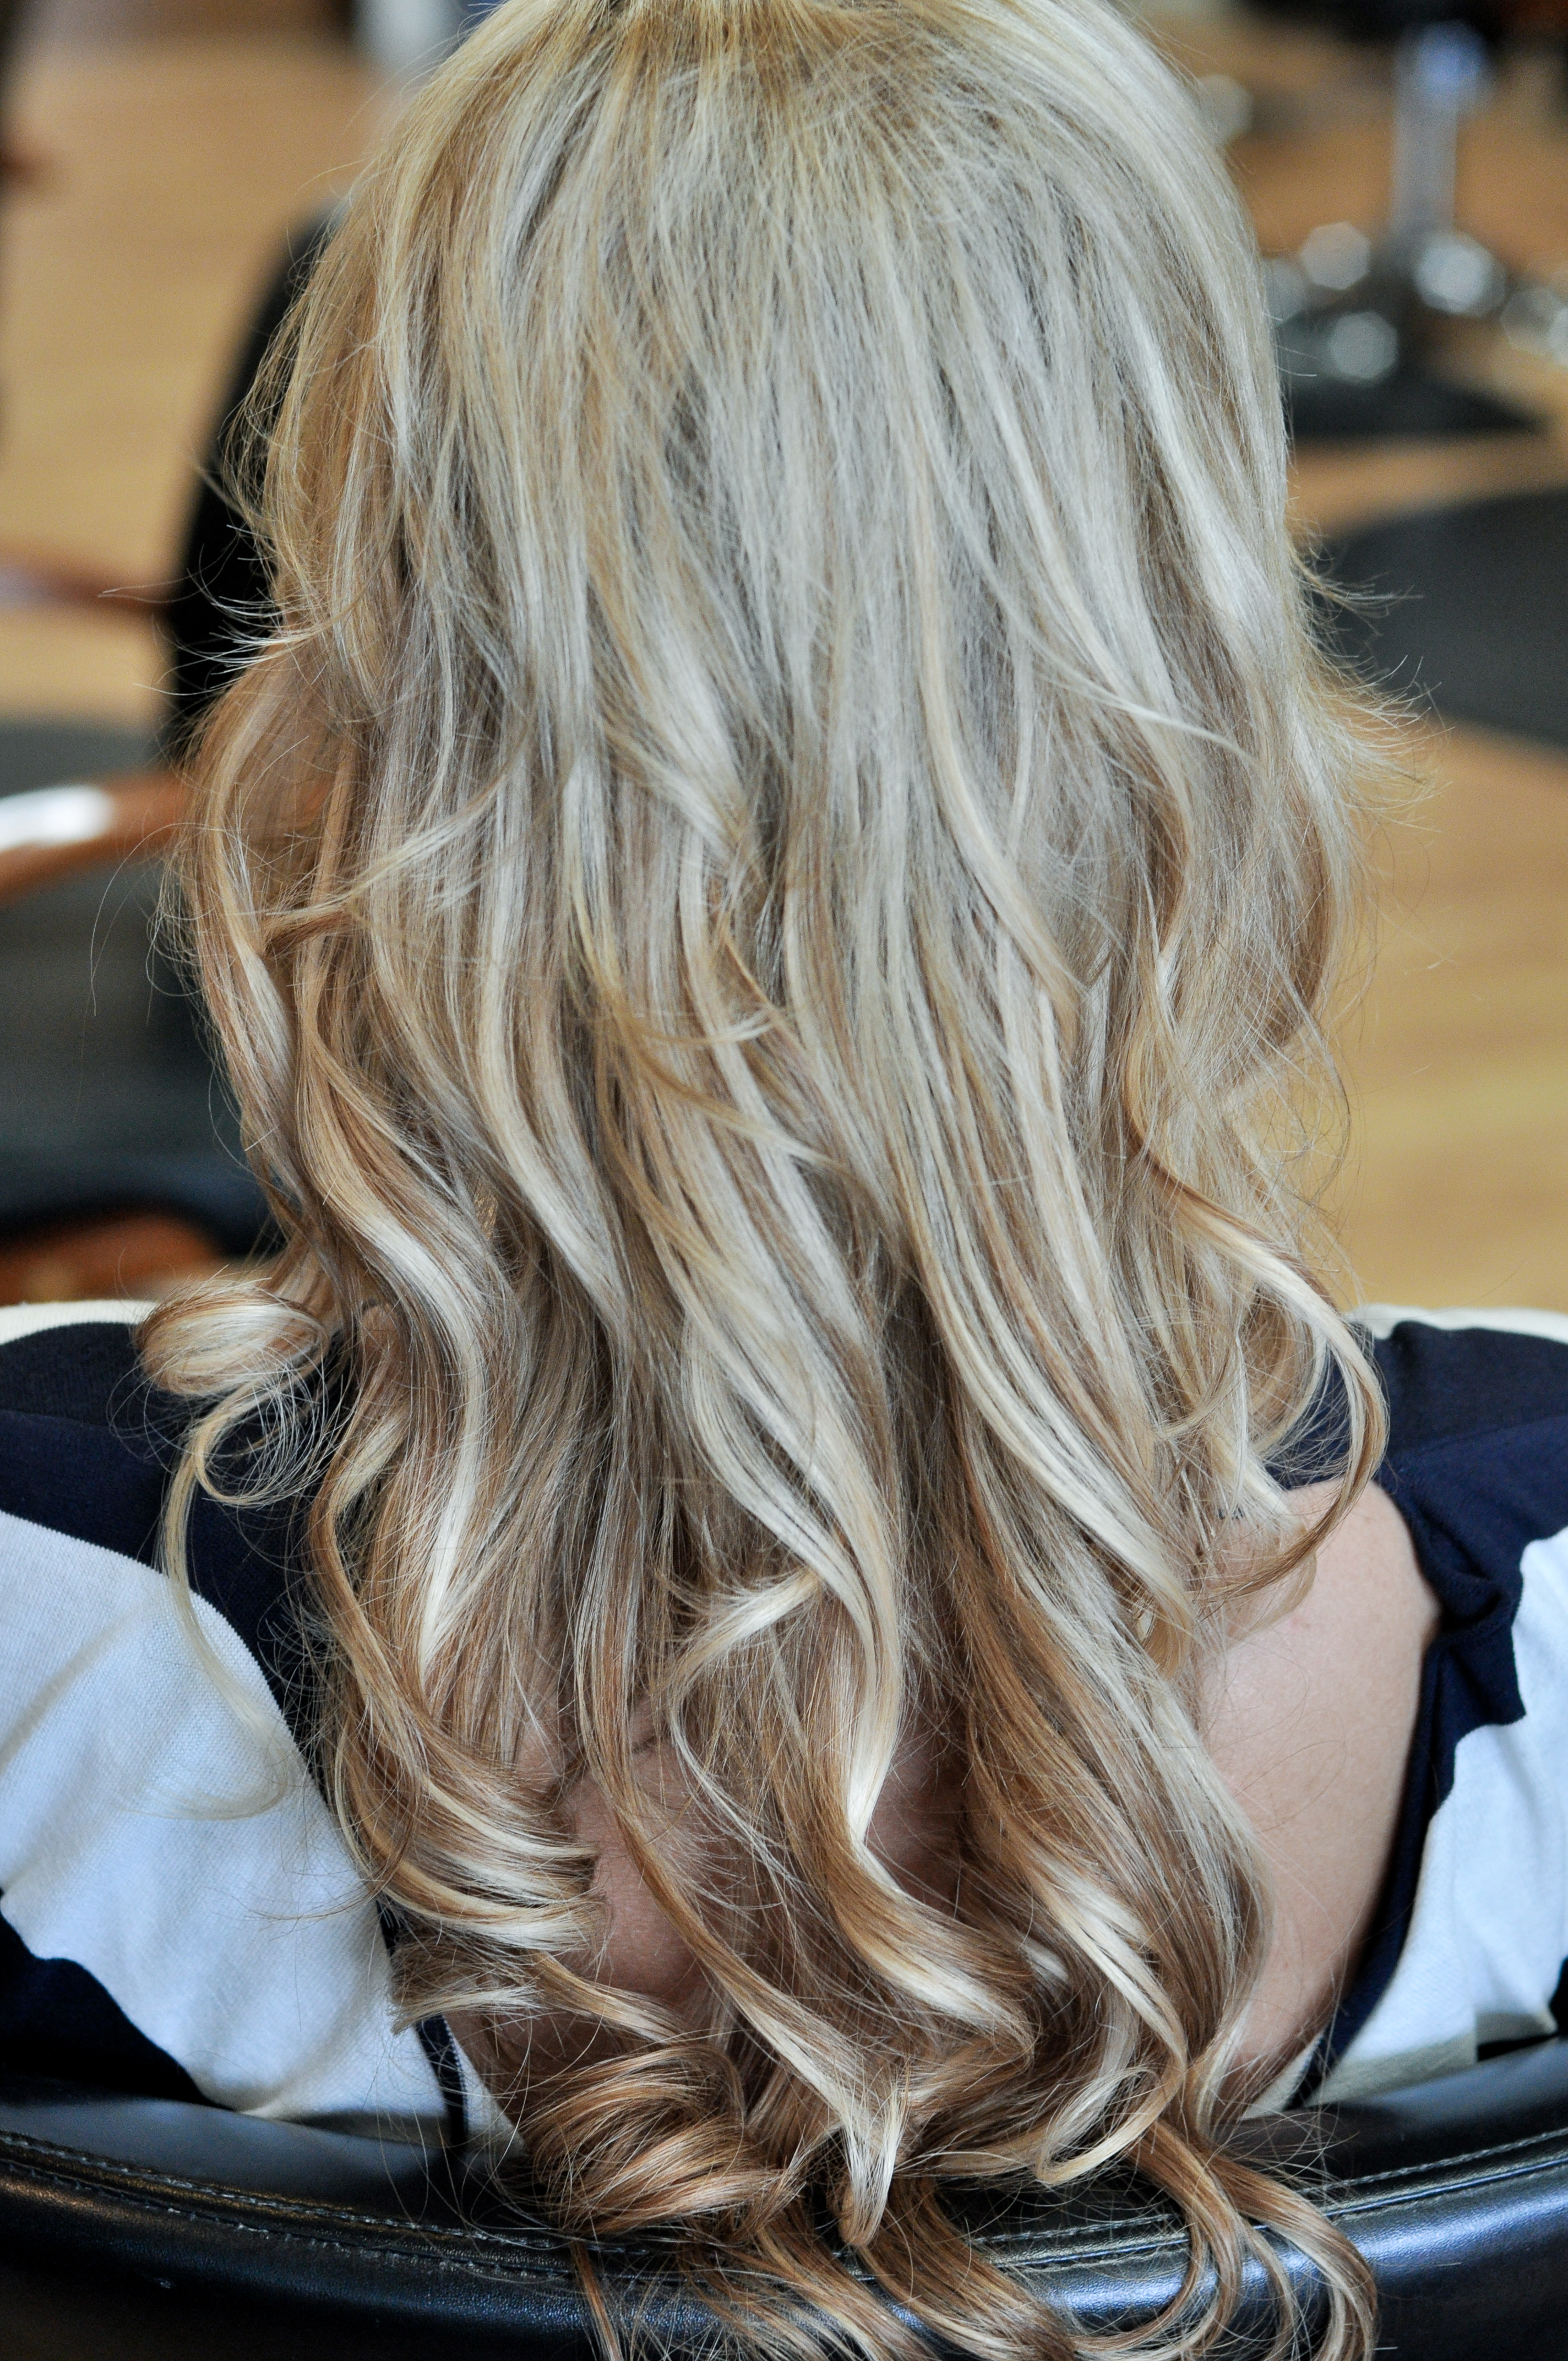 Fusion Extensions In Greenville/Spartanburg/Anderson SC